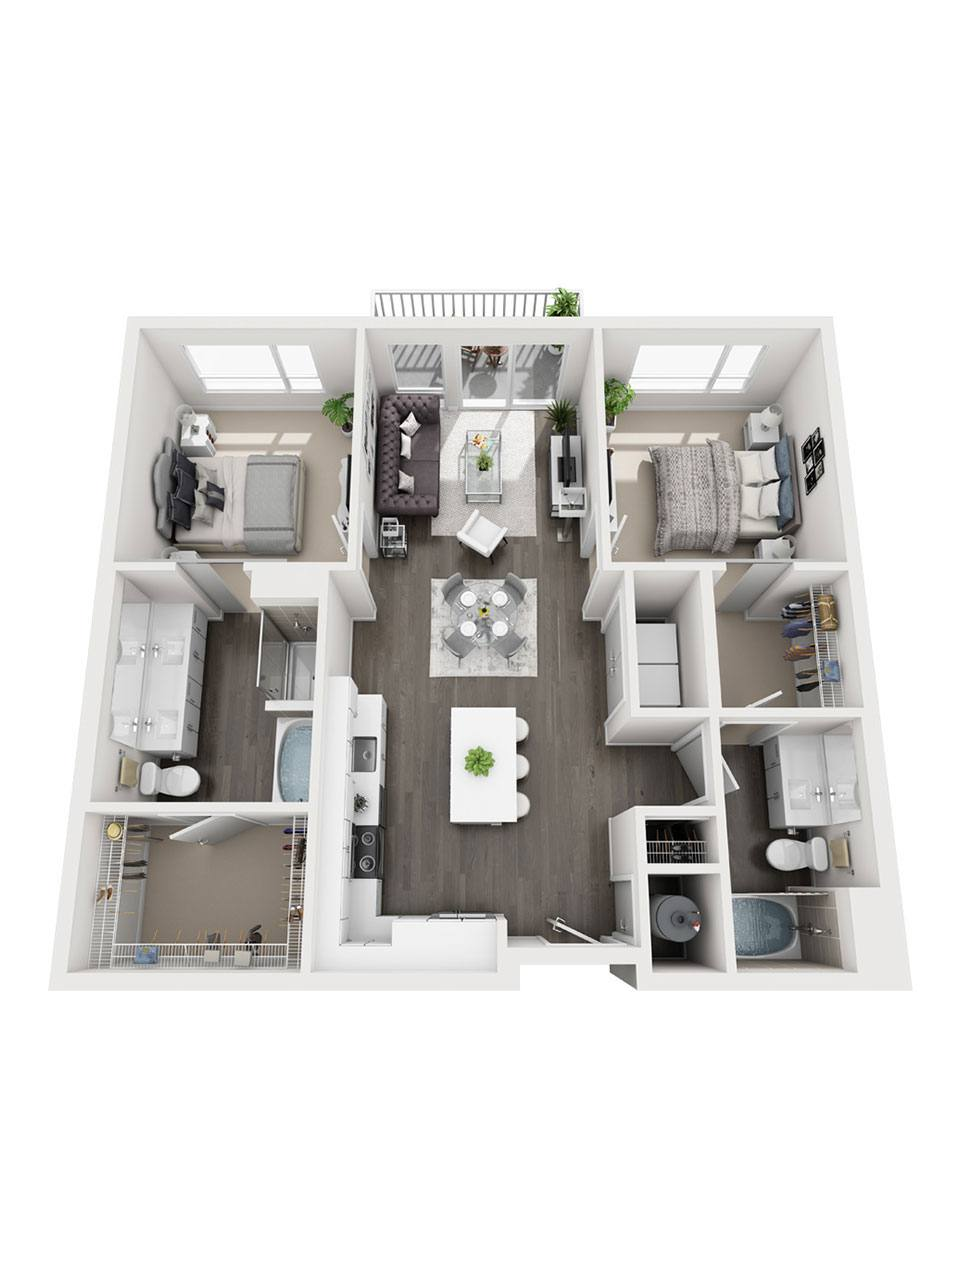 Plan 2 Bedroom – B1 | 2 Bath